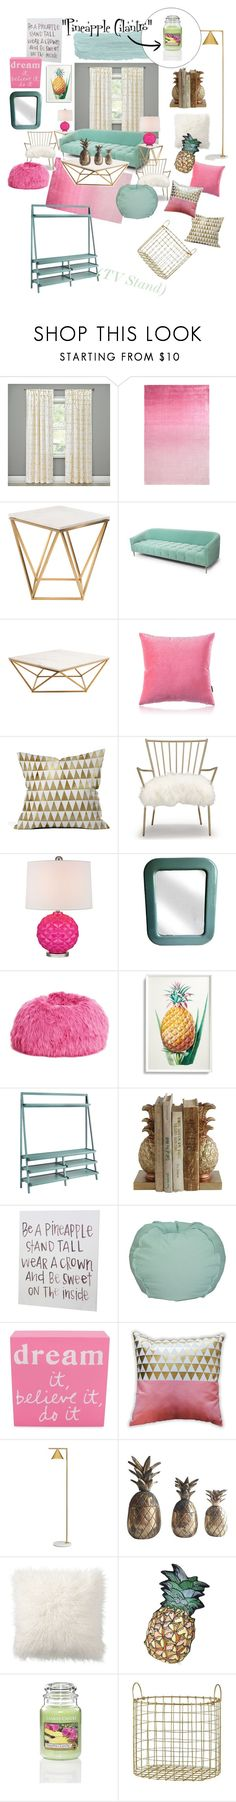 """Pineapple Cilantro"" by meechsmommy ❤ liked on Polyvore featuring interior, interiors, interior design, home, home decor, interior decorating, Threshold, Designers Guild, Nuevo and Mint Velvet"